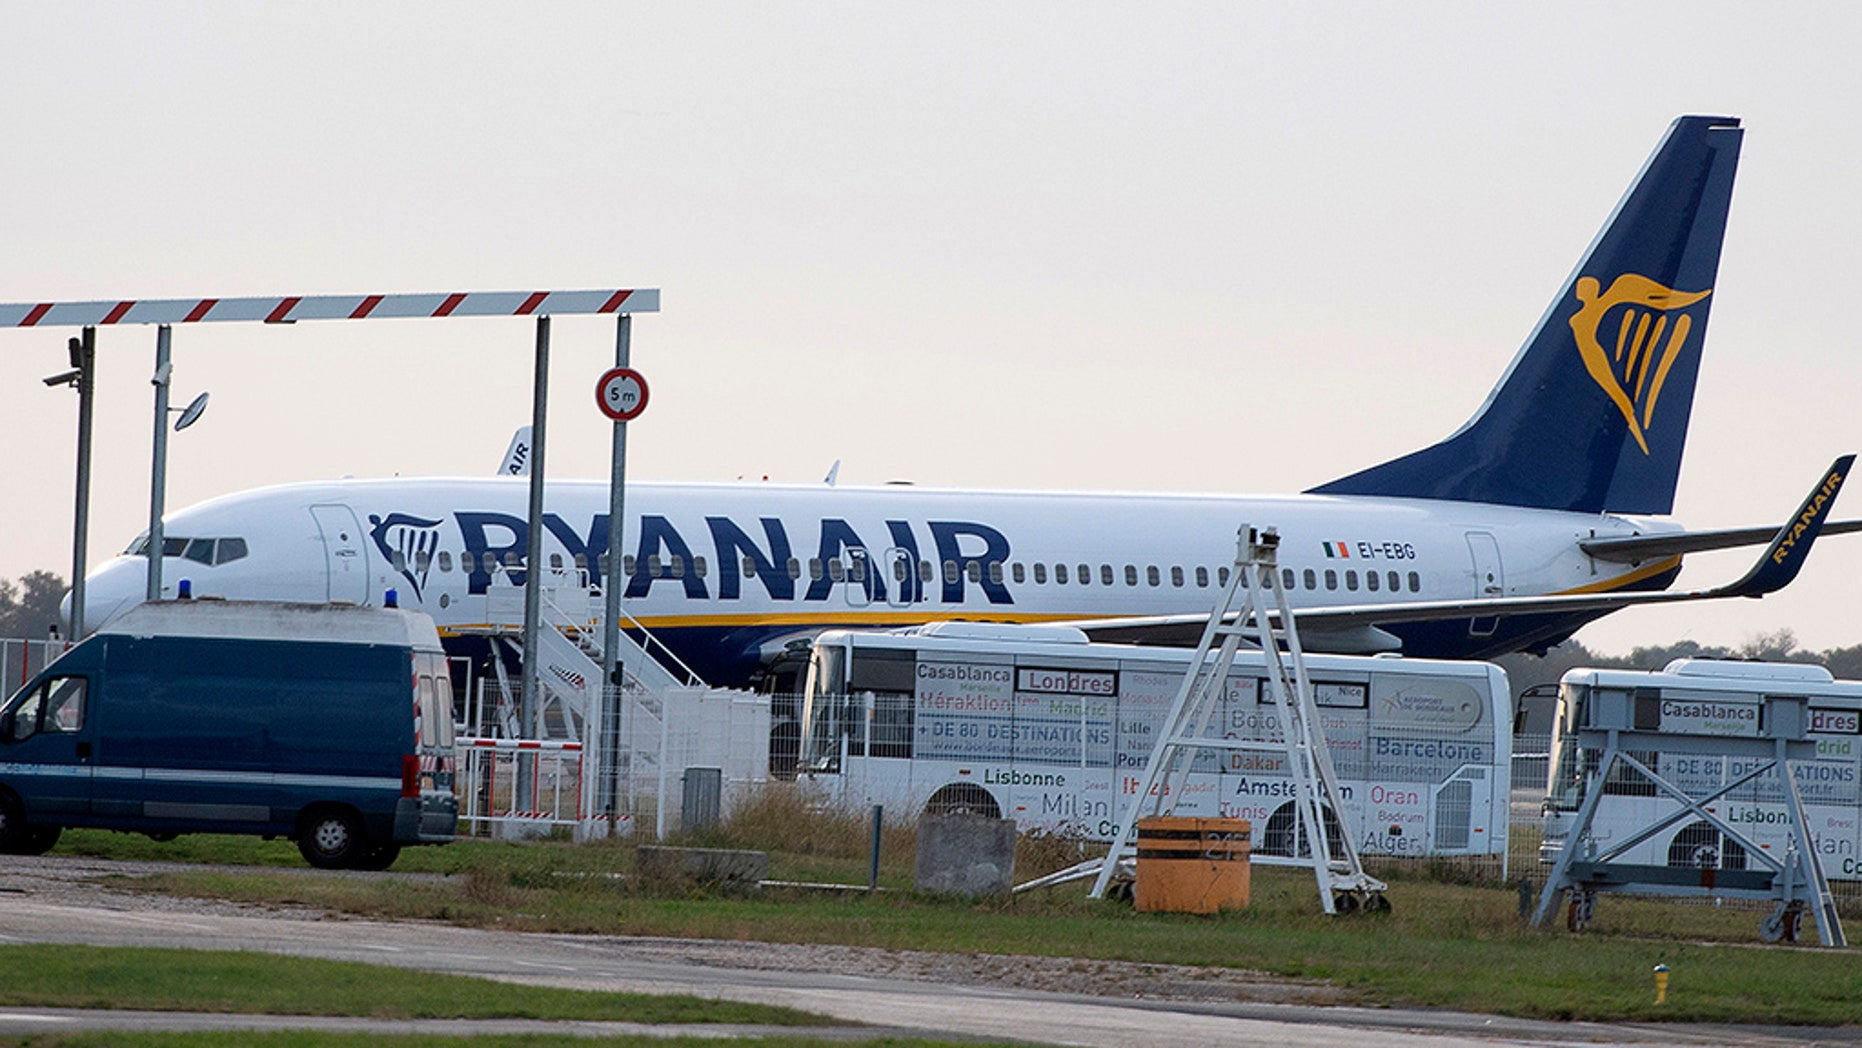 A Ryanair plane sits on the asphalt at Bordeaux-Merignac airport in southwest France on Friday after being shot by French authorities.